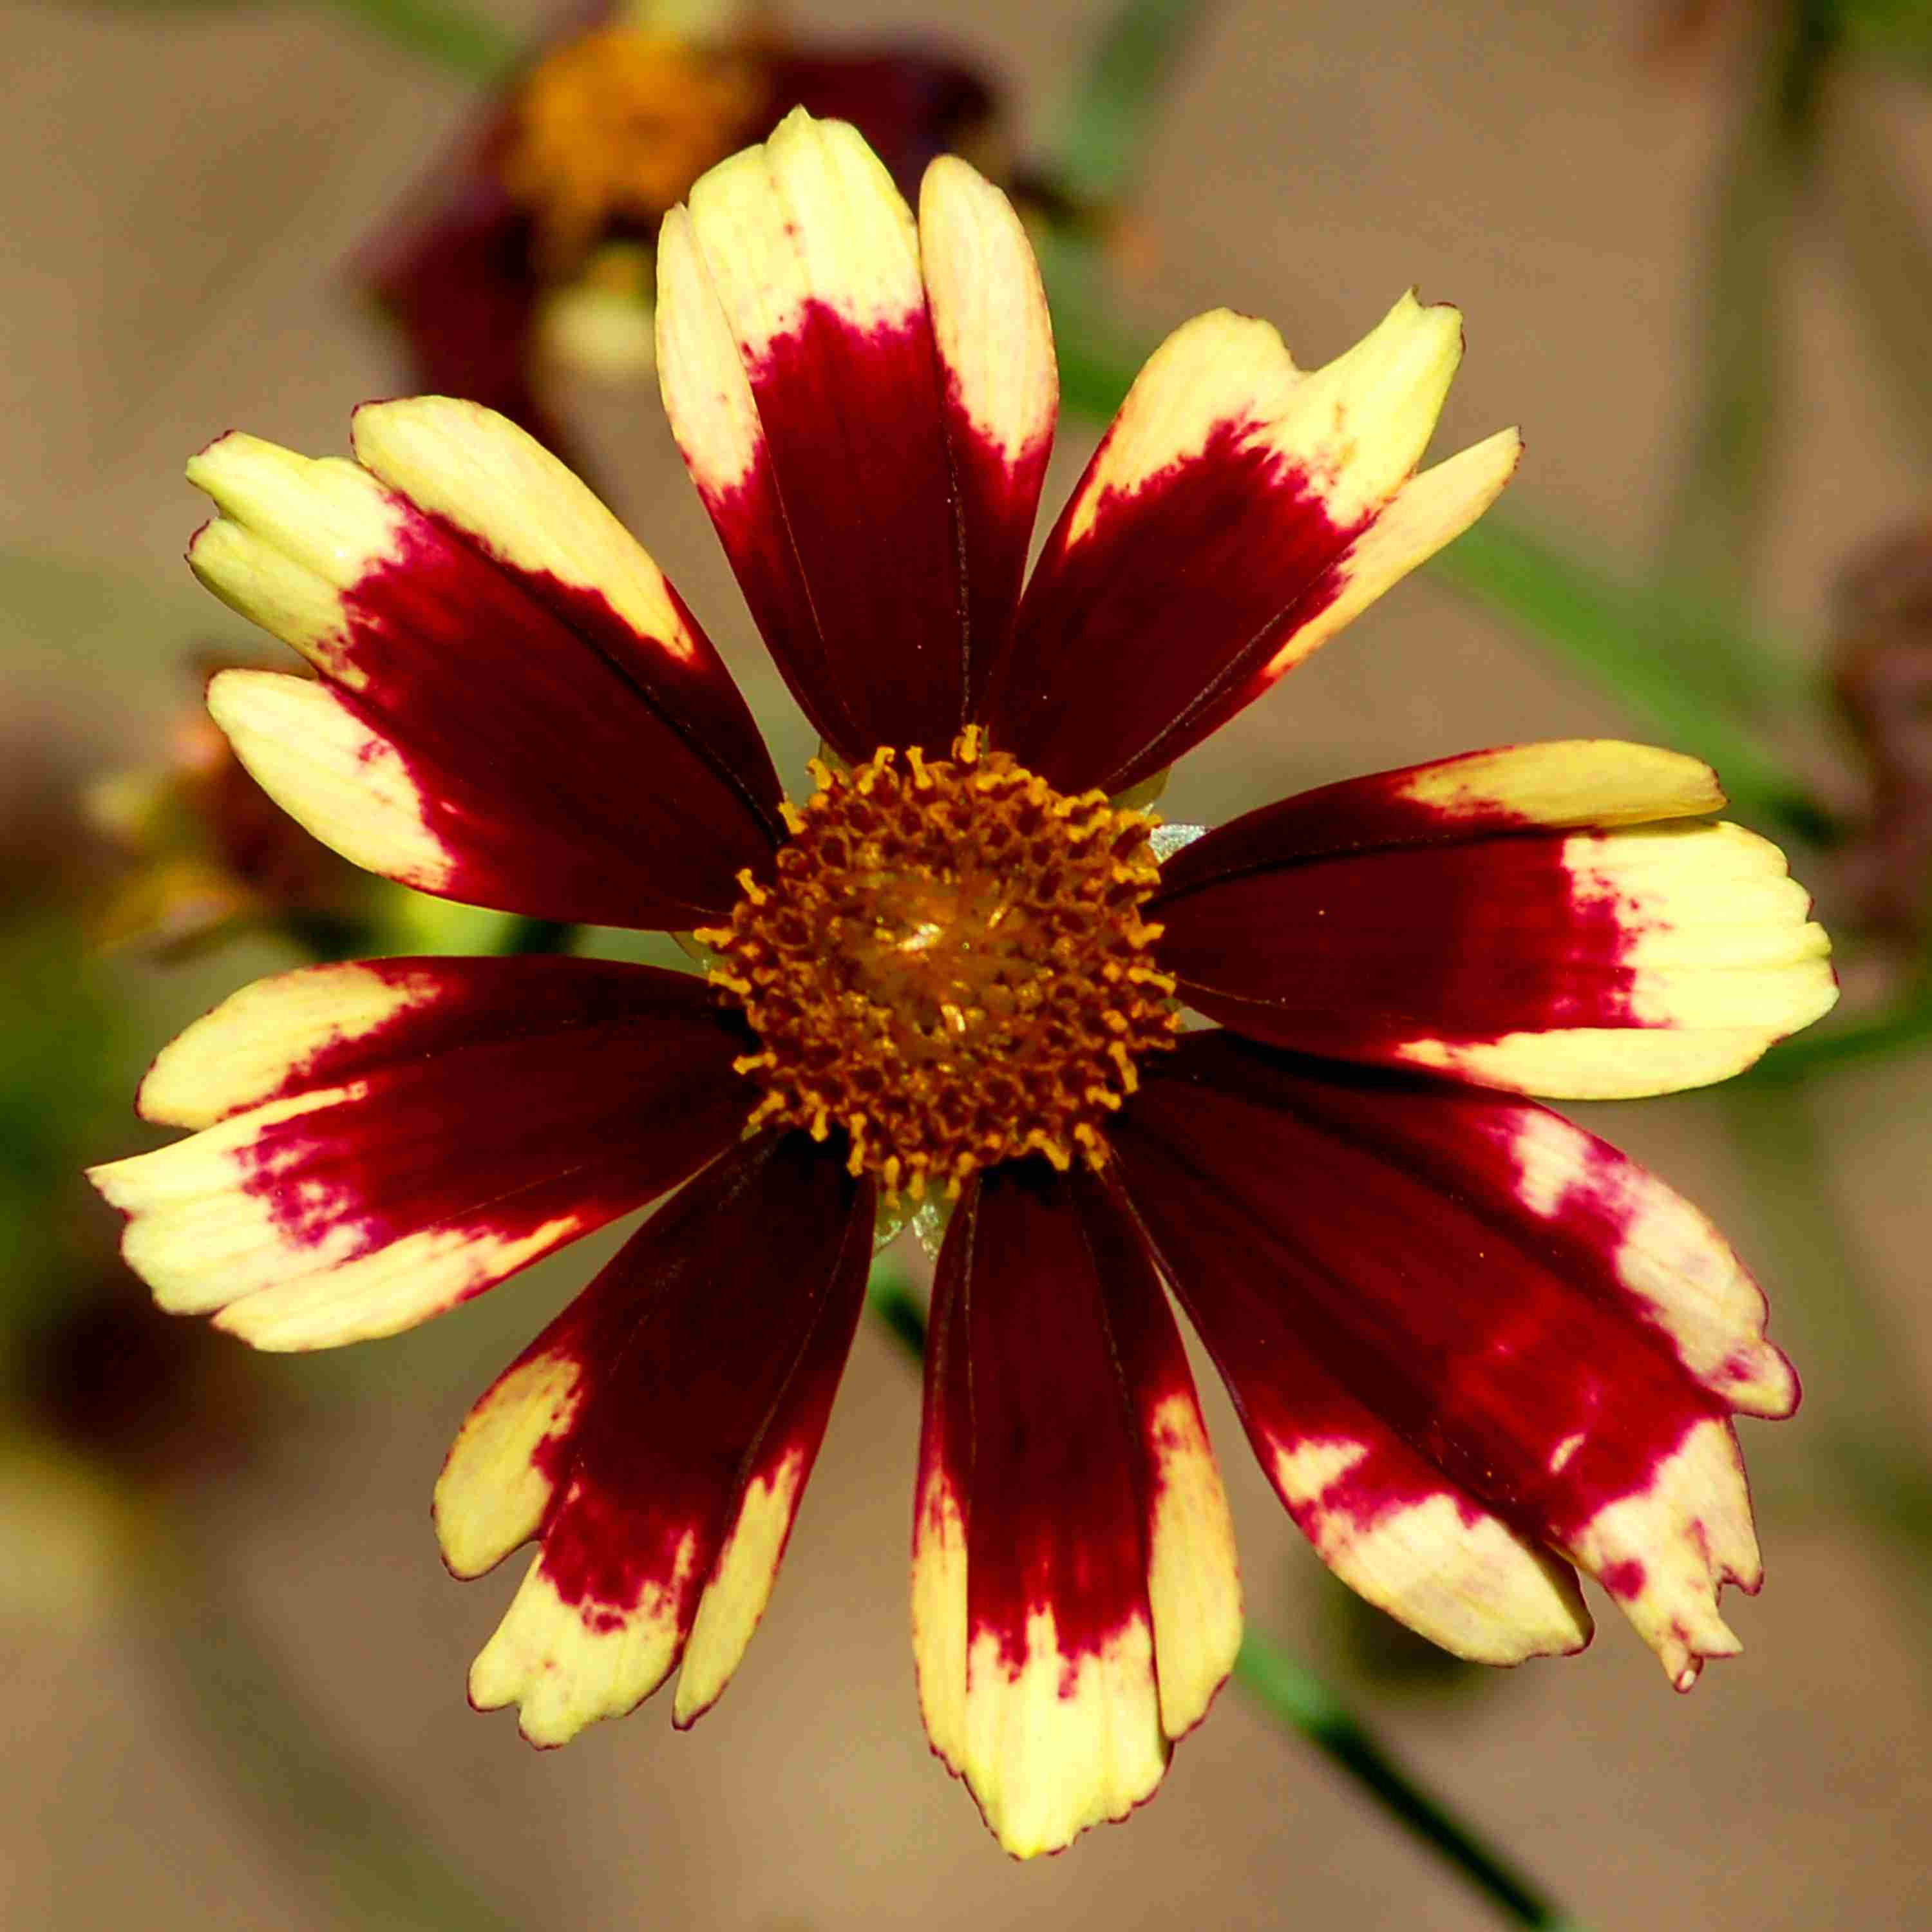 My picture shows Ruby Frost coreopsis. It's a bi-colored flower with a rich red color.